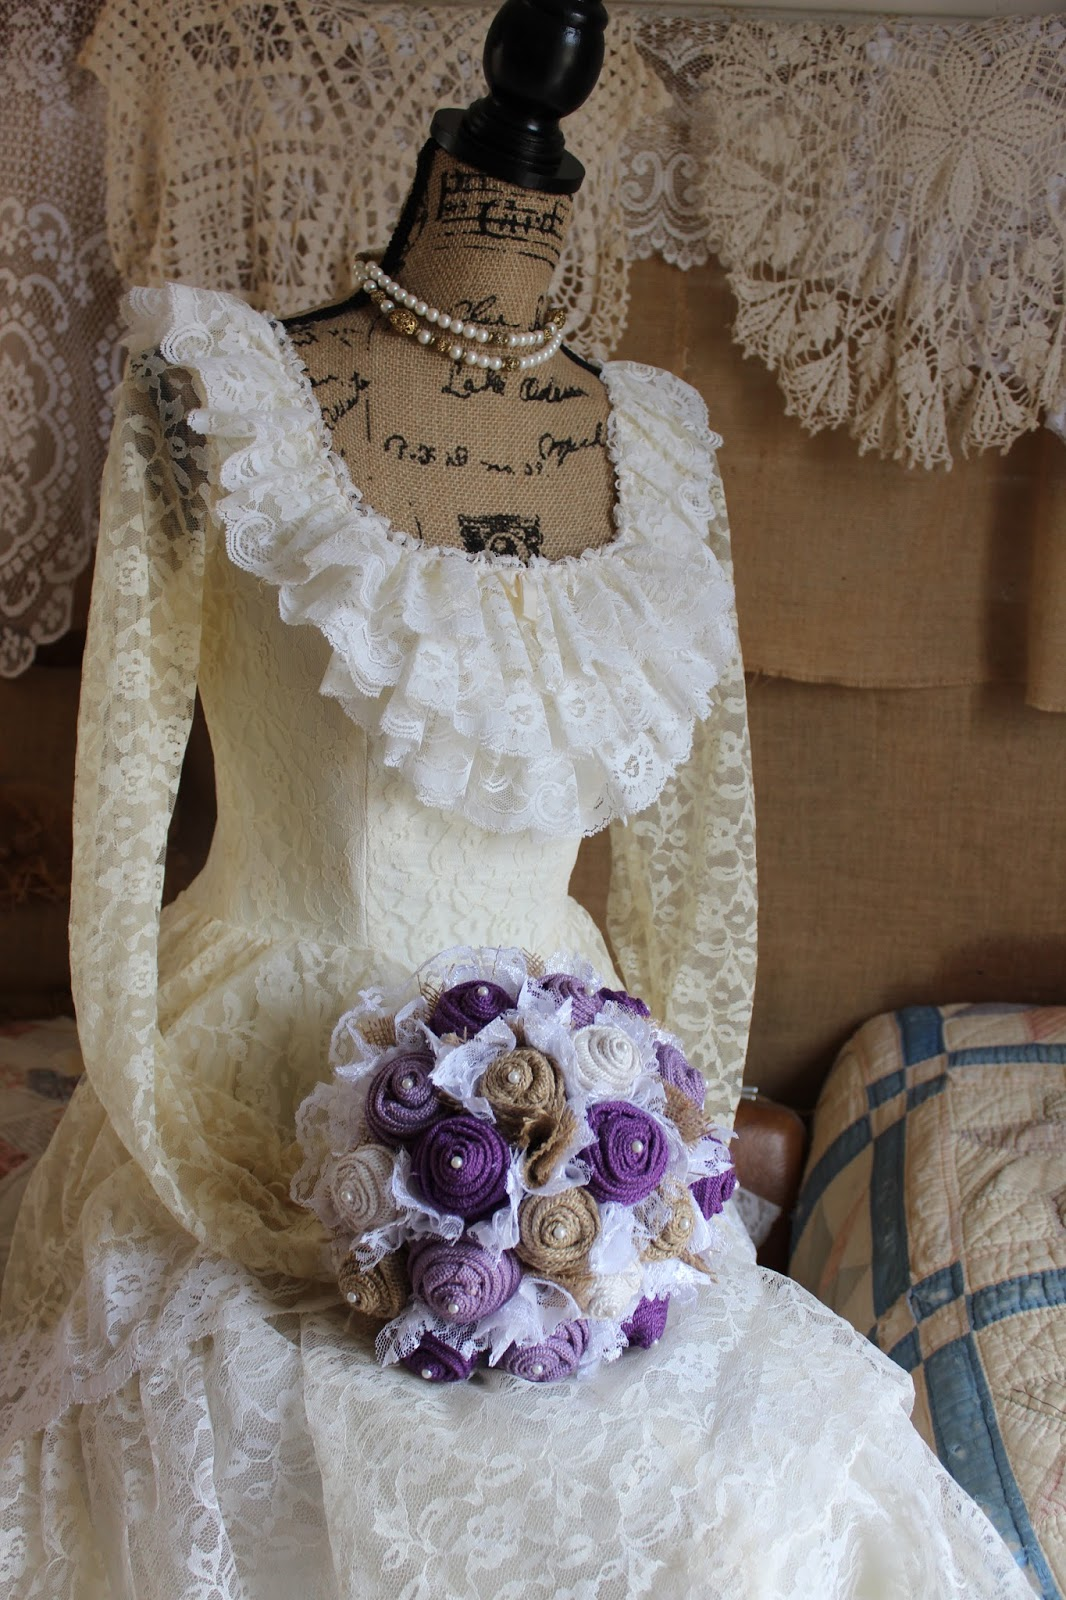 burlap and lace wedding bouquet in purple, lavender, tan, and cream